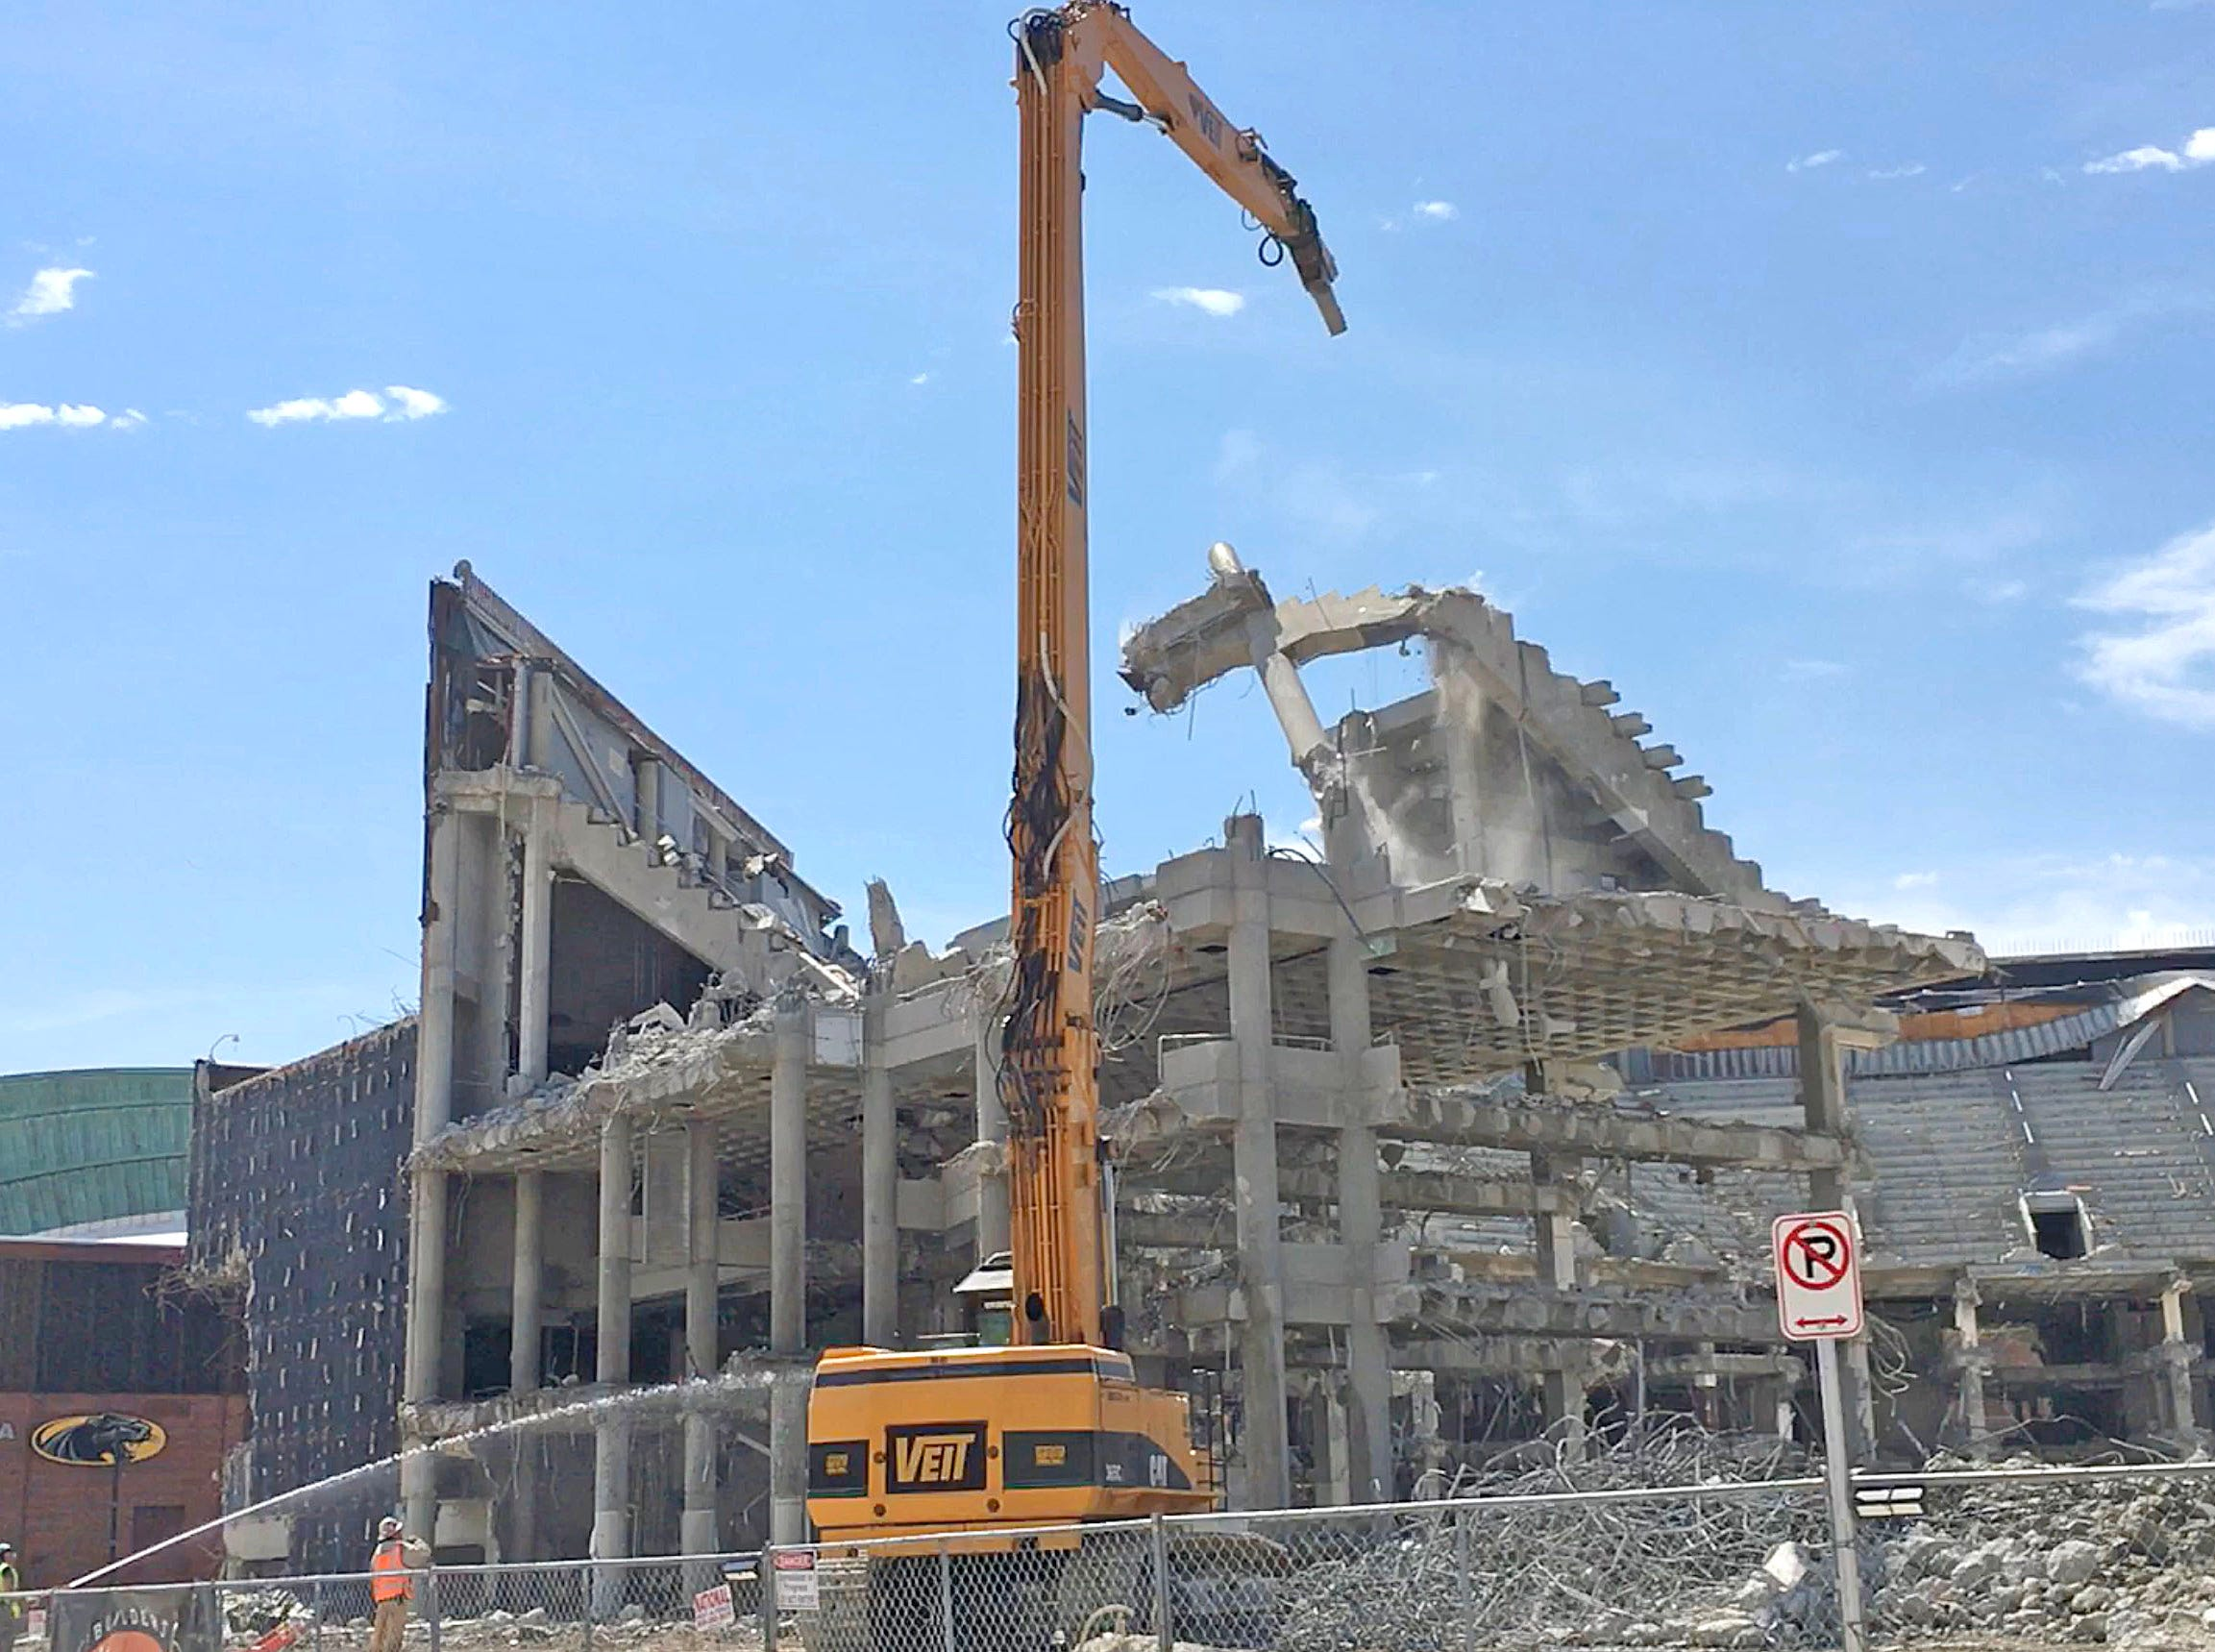 A beam from the upper bowl of the arena comes crashing down as work continues on the demolition.